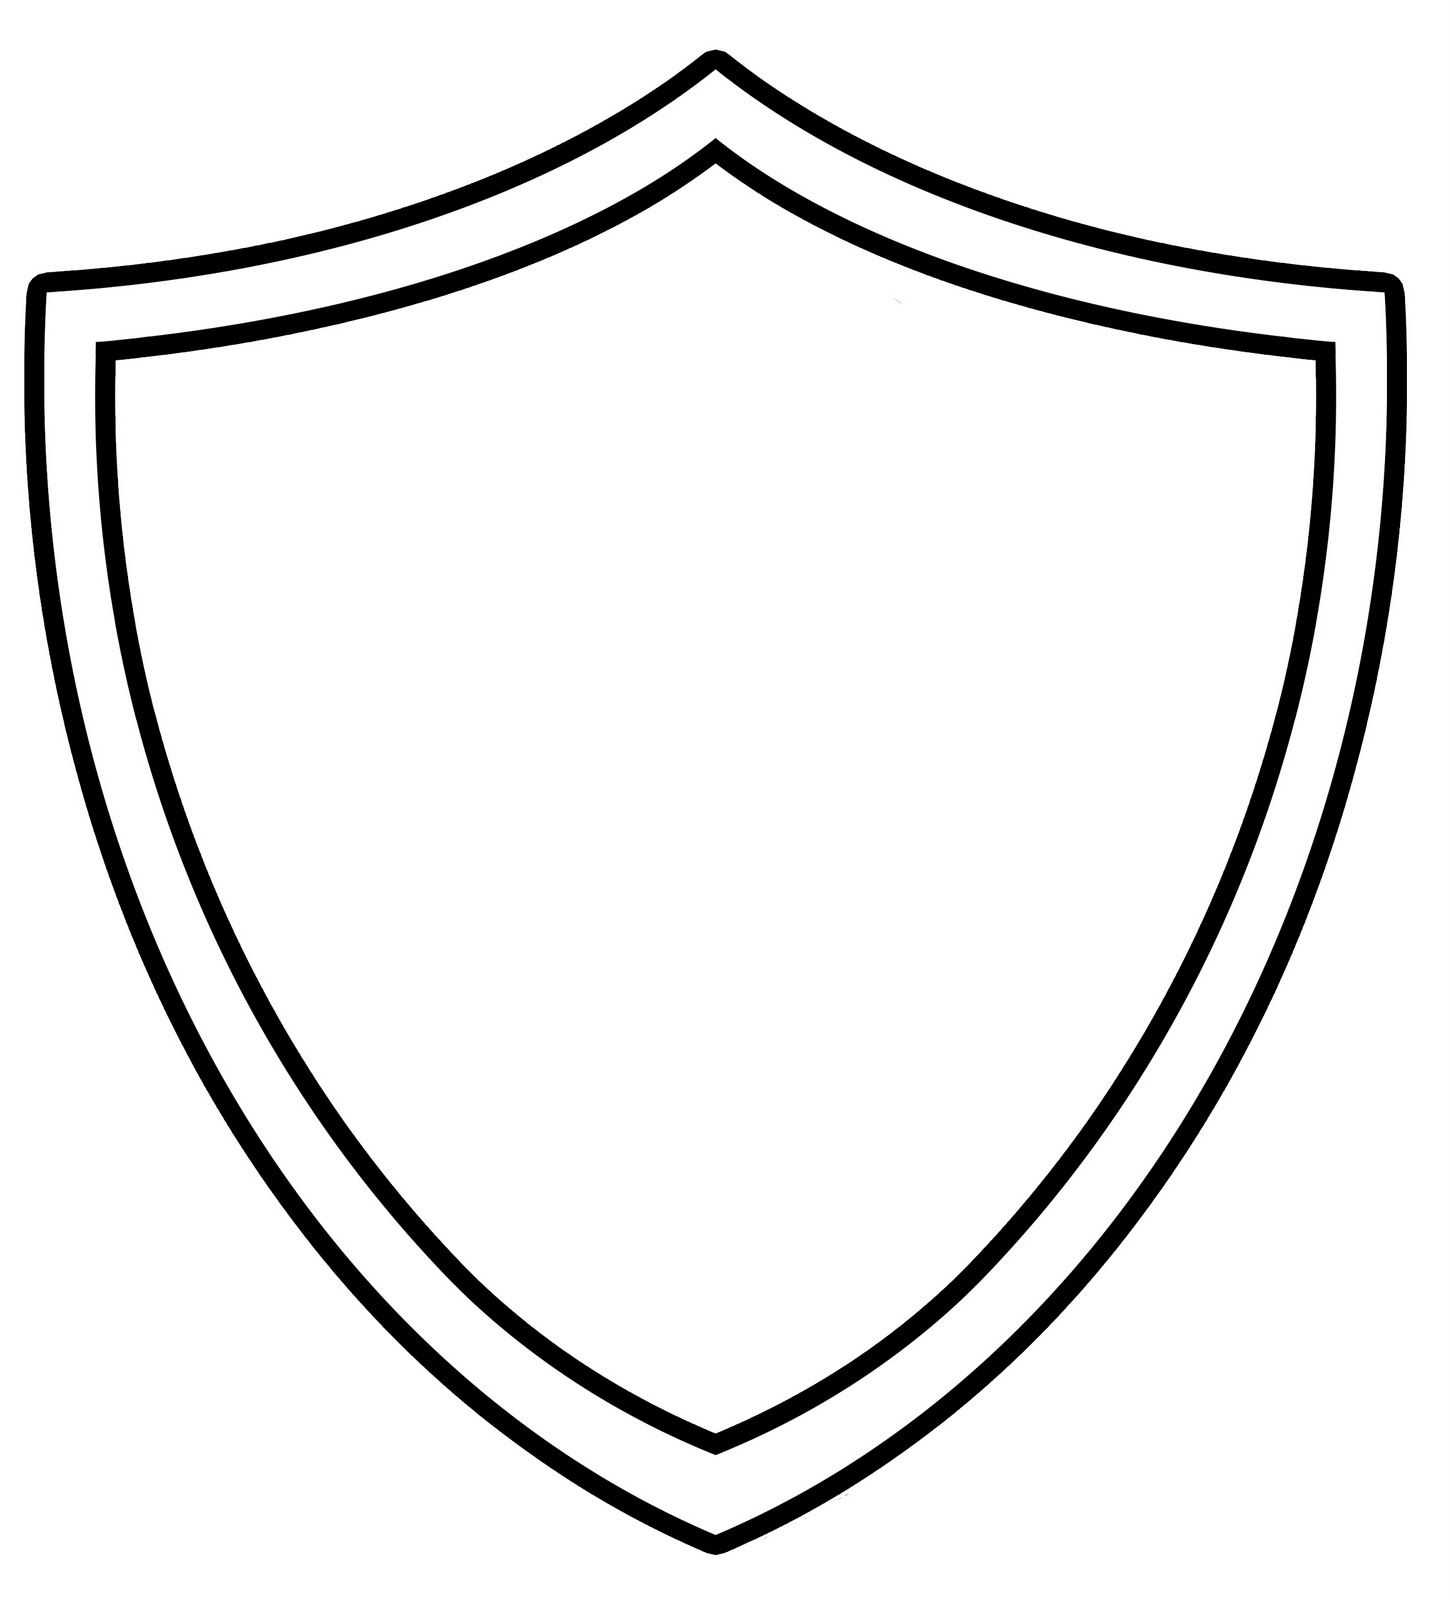 Ctr shield coloring page quad ocean group classroom for Shield template to print